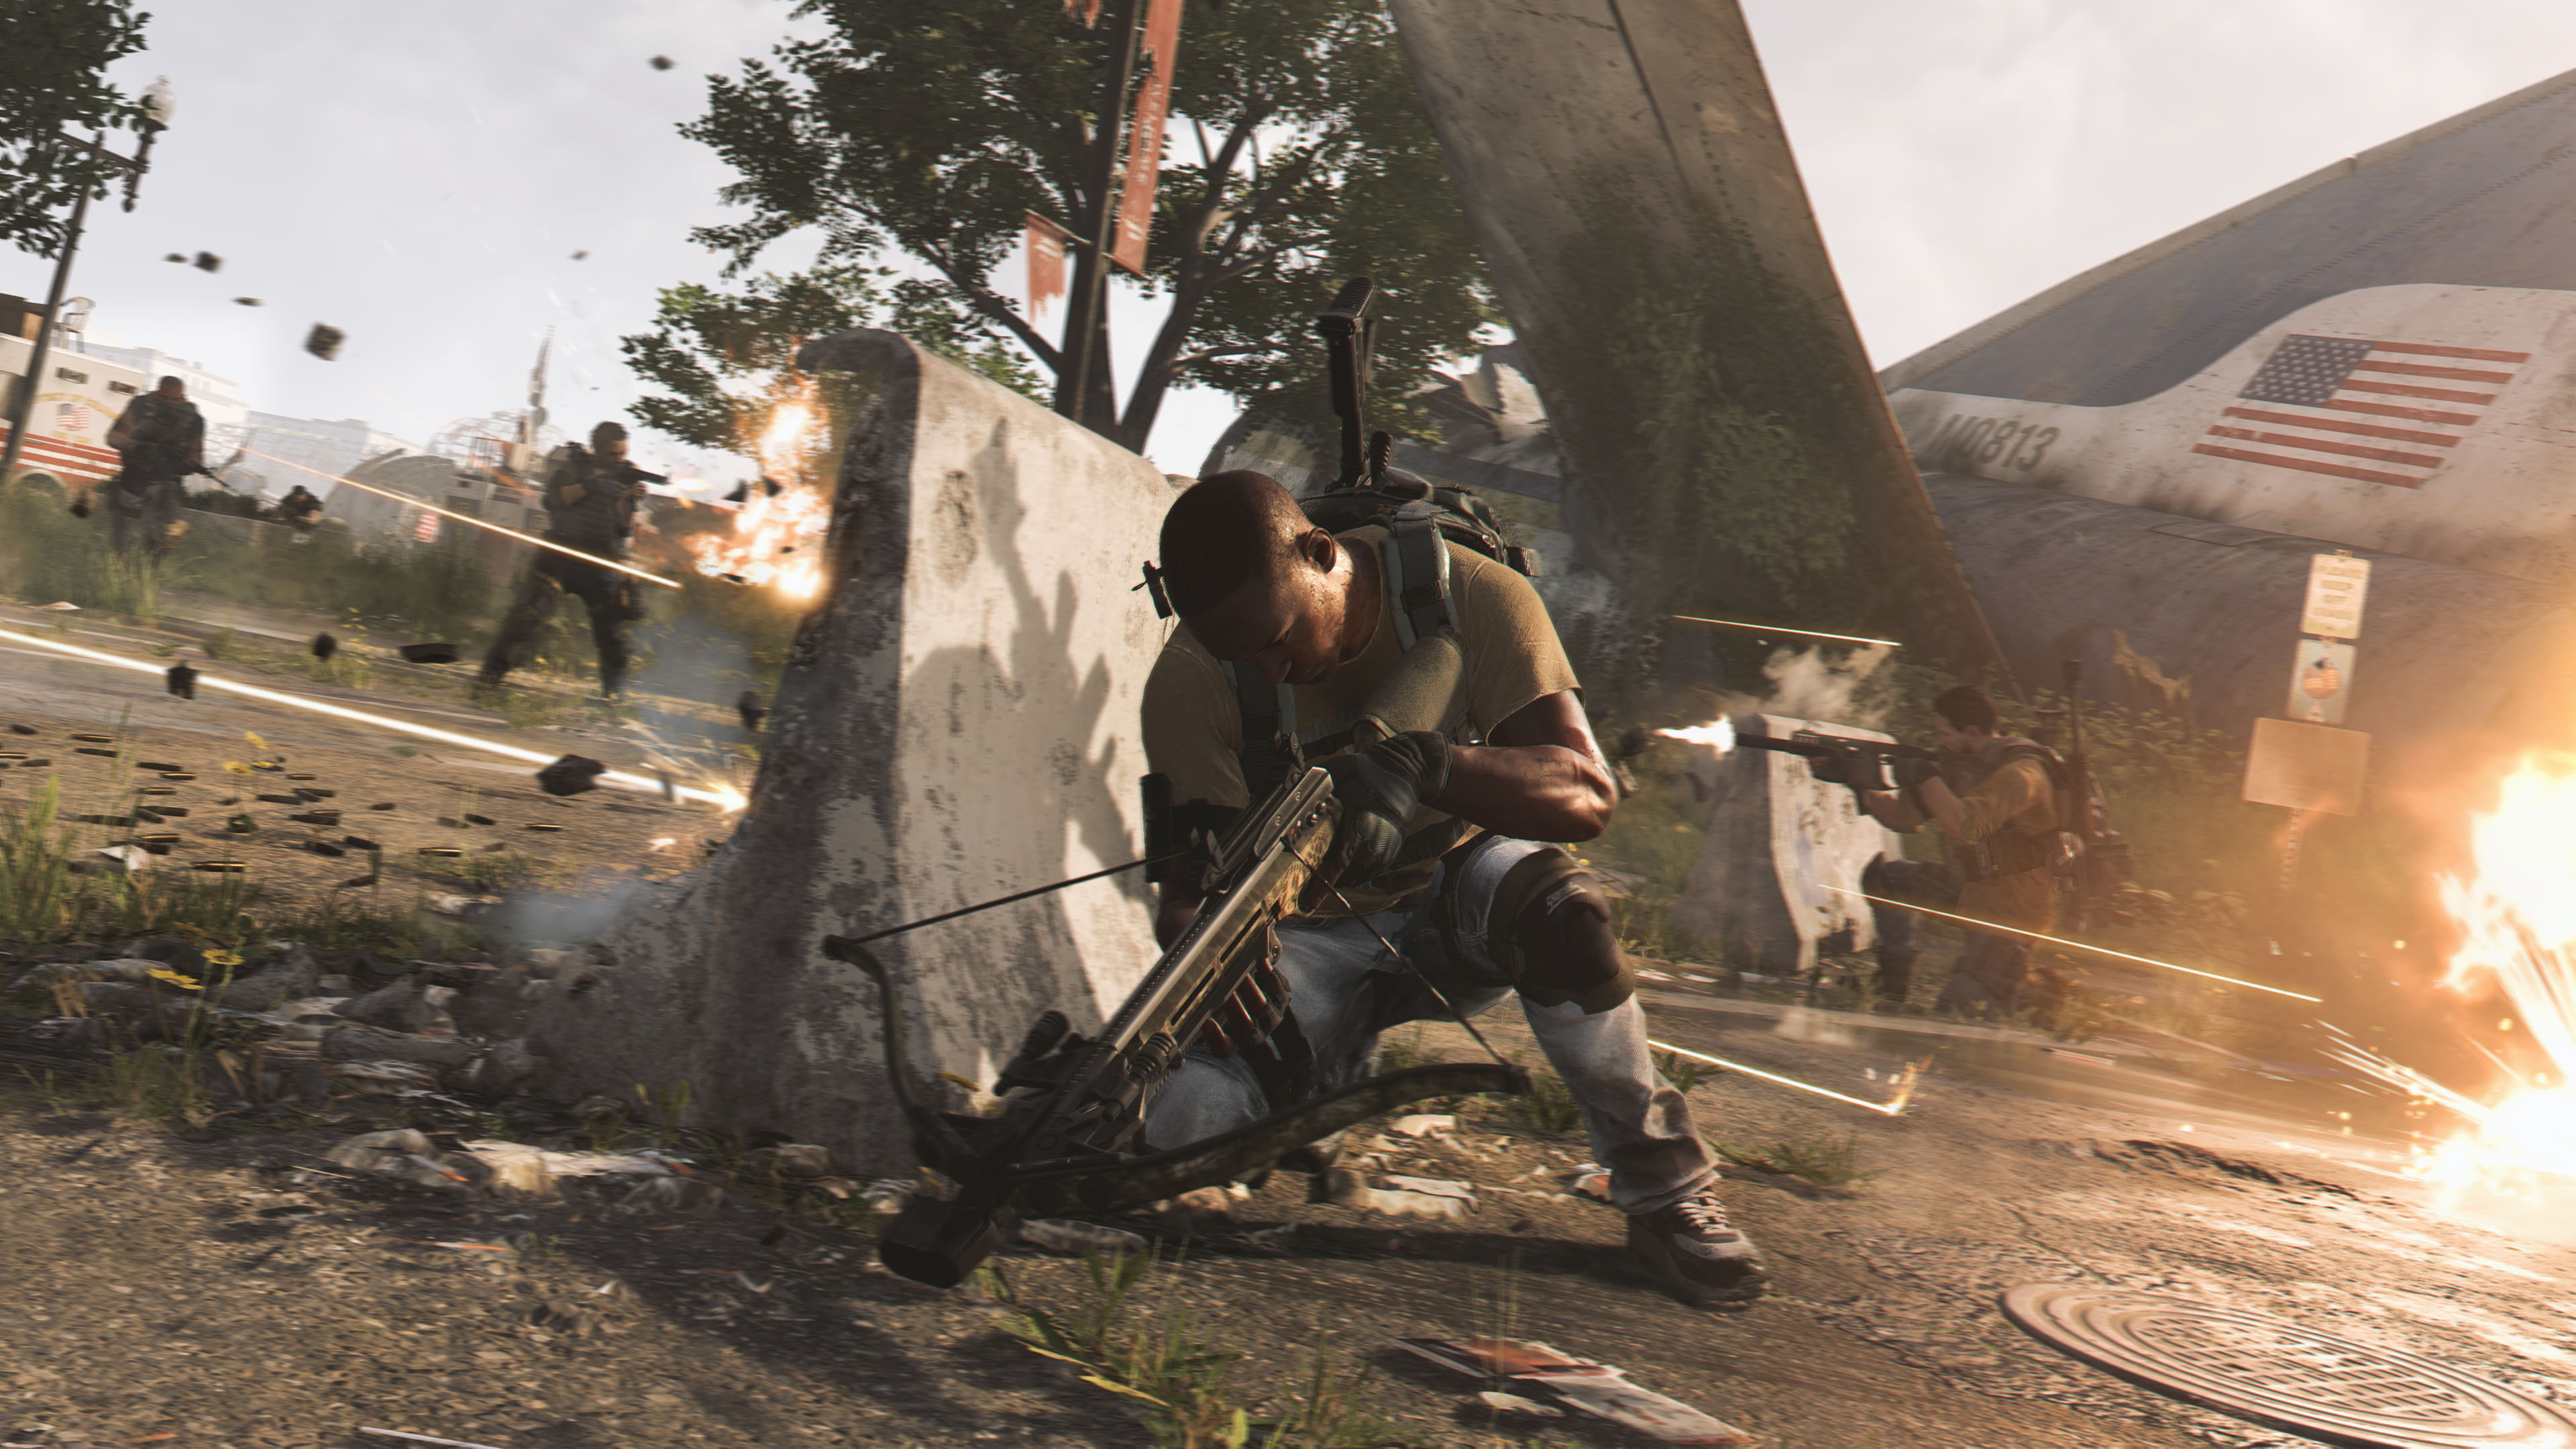 The Division 2: How to get early access, Year 1 season pass, and what edition to buy